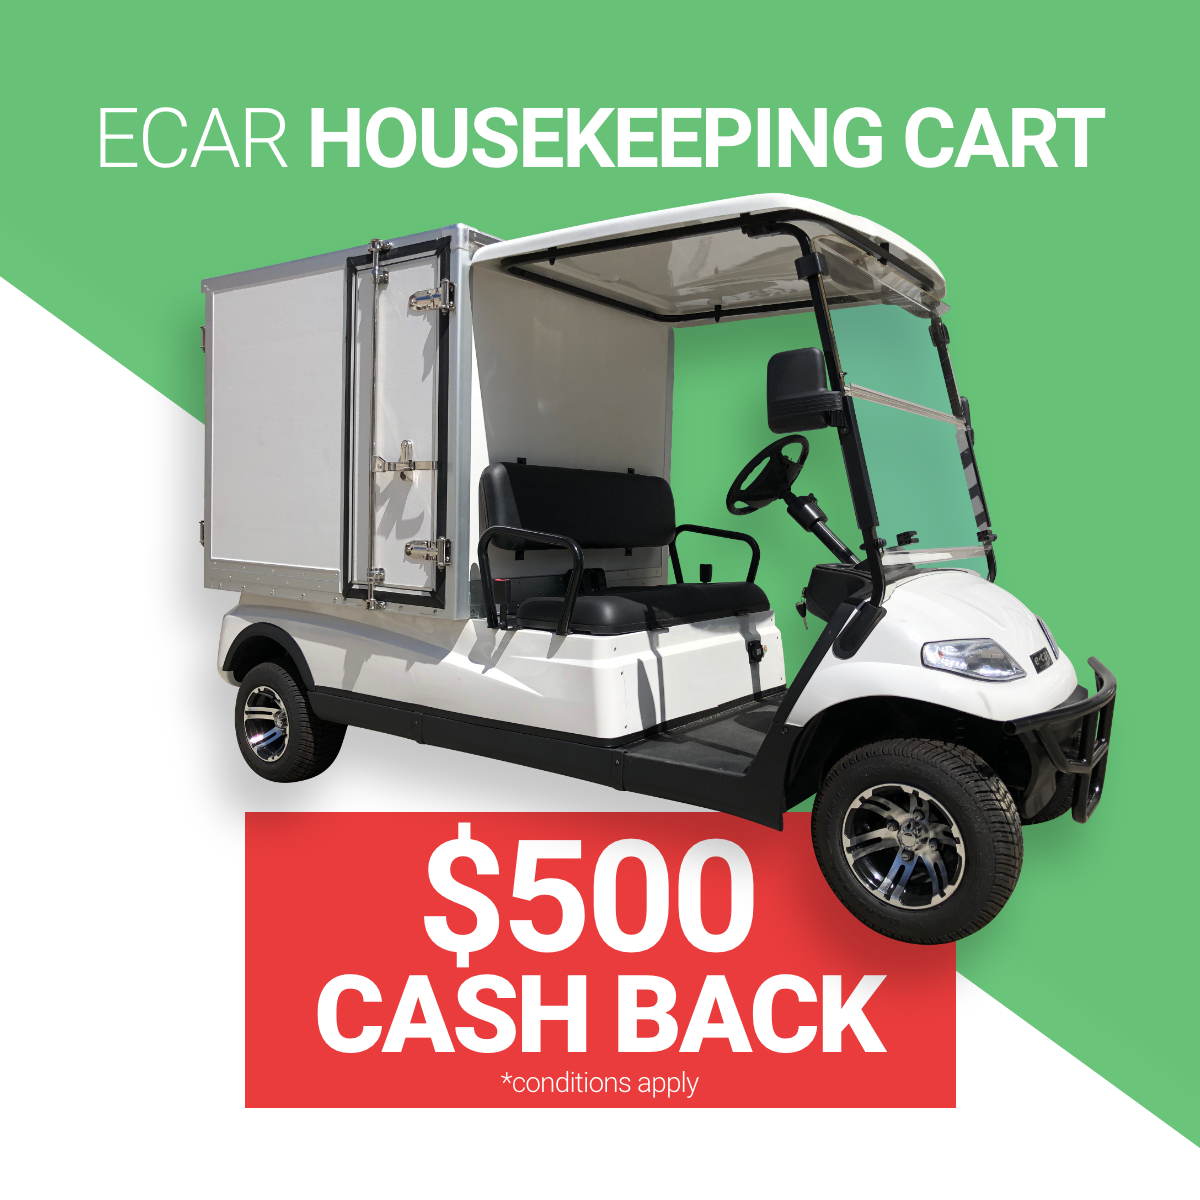 ECAR HOUSEKEEPING ELECTRIC CART SALE